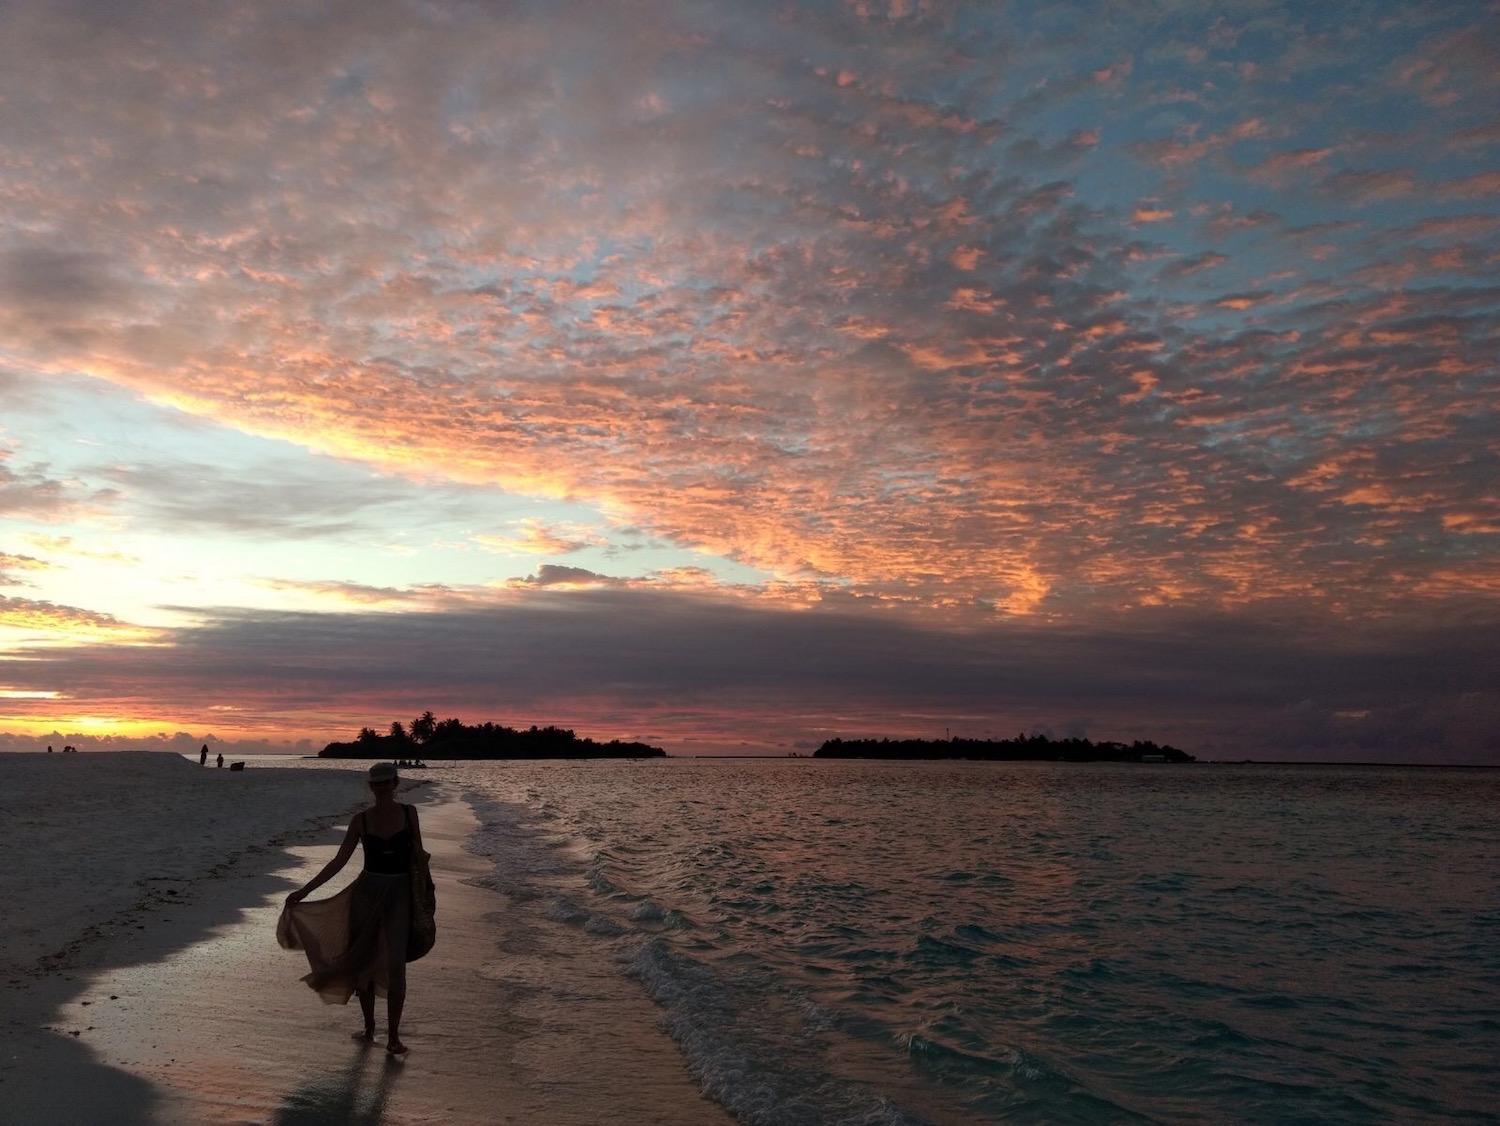 Sun Island Resort Maldives sunset